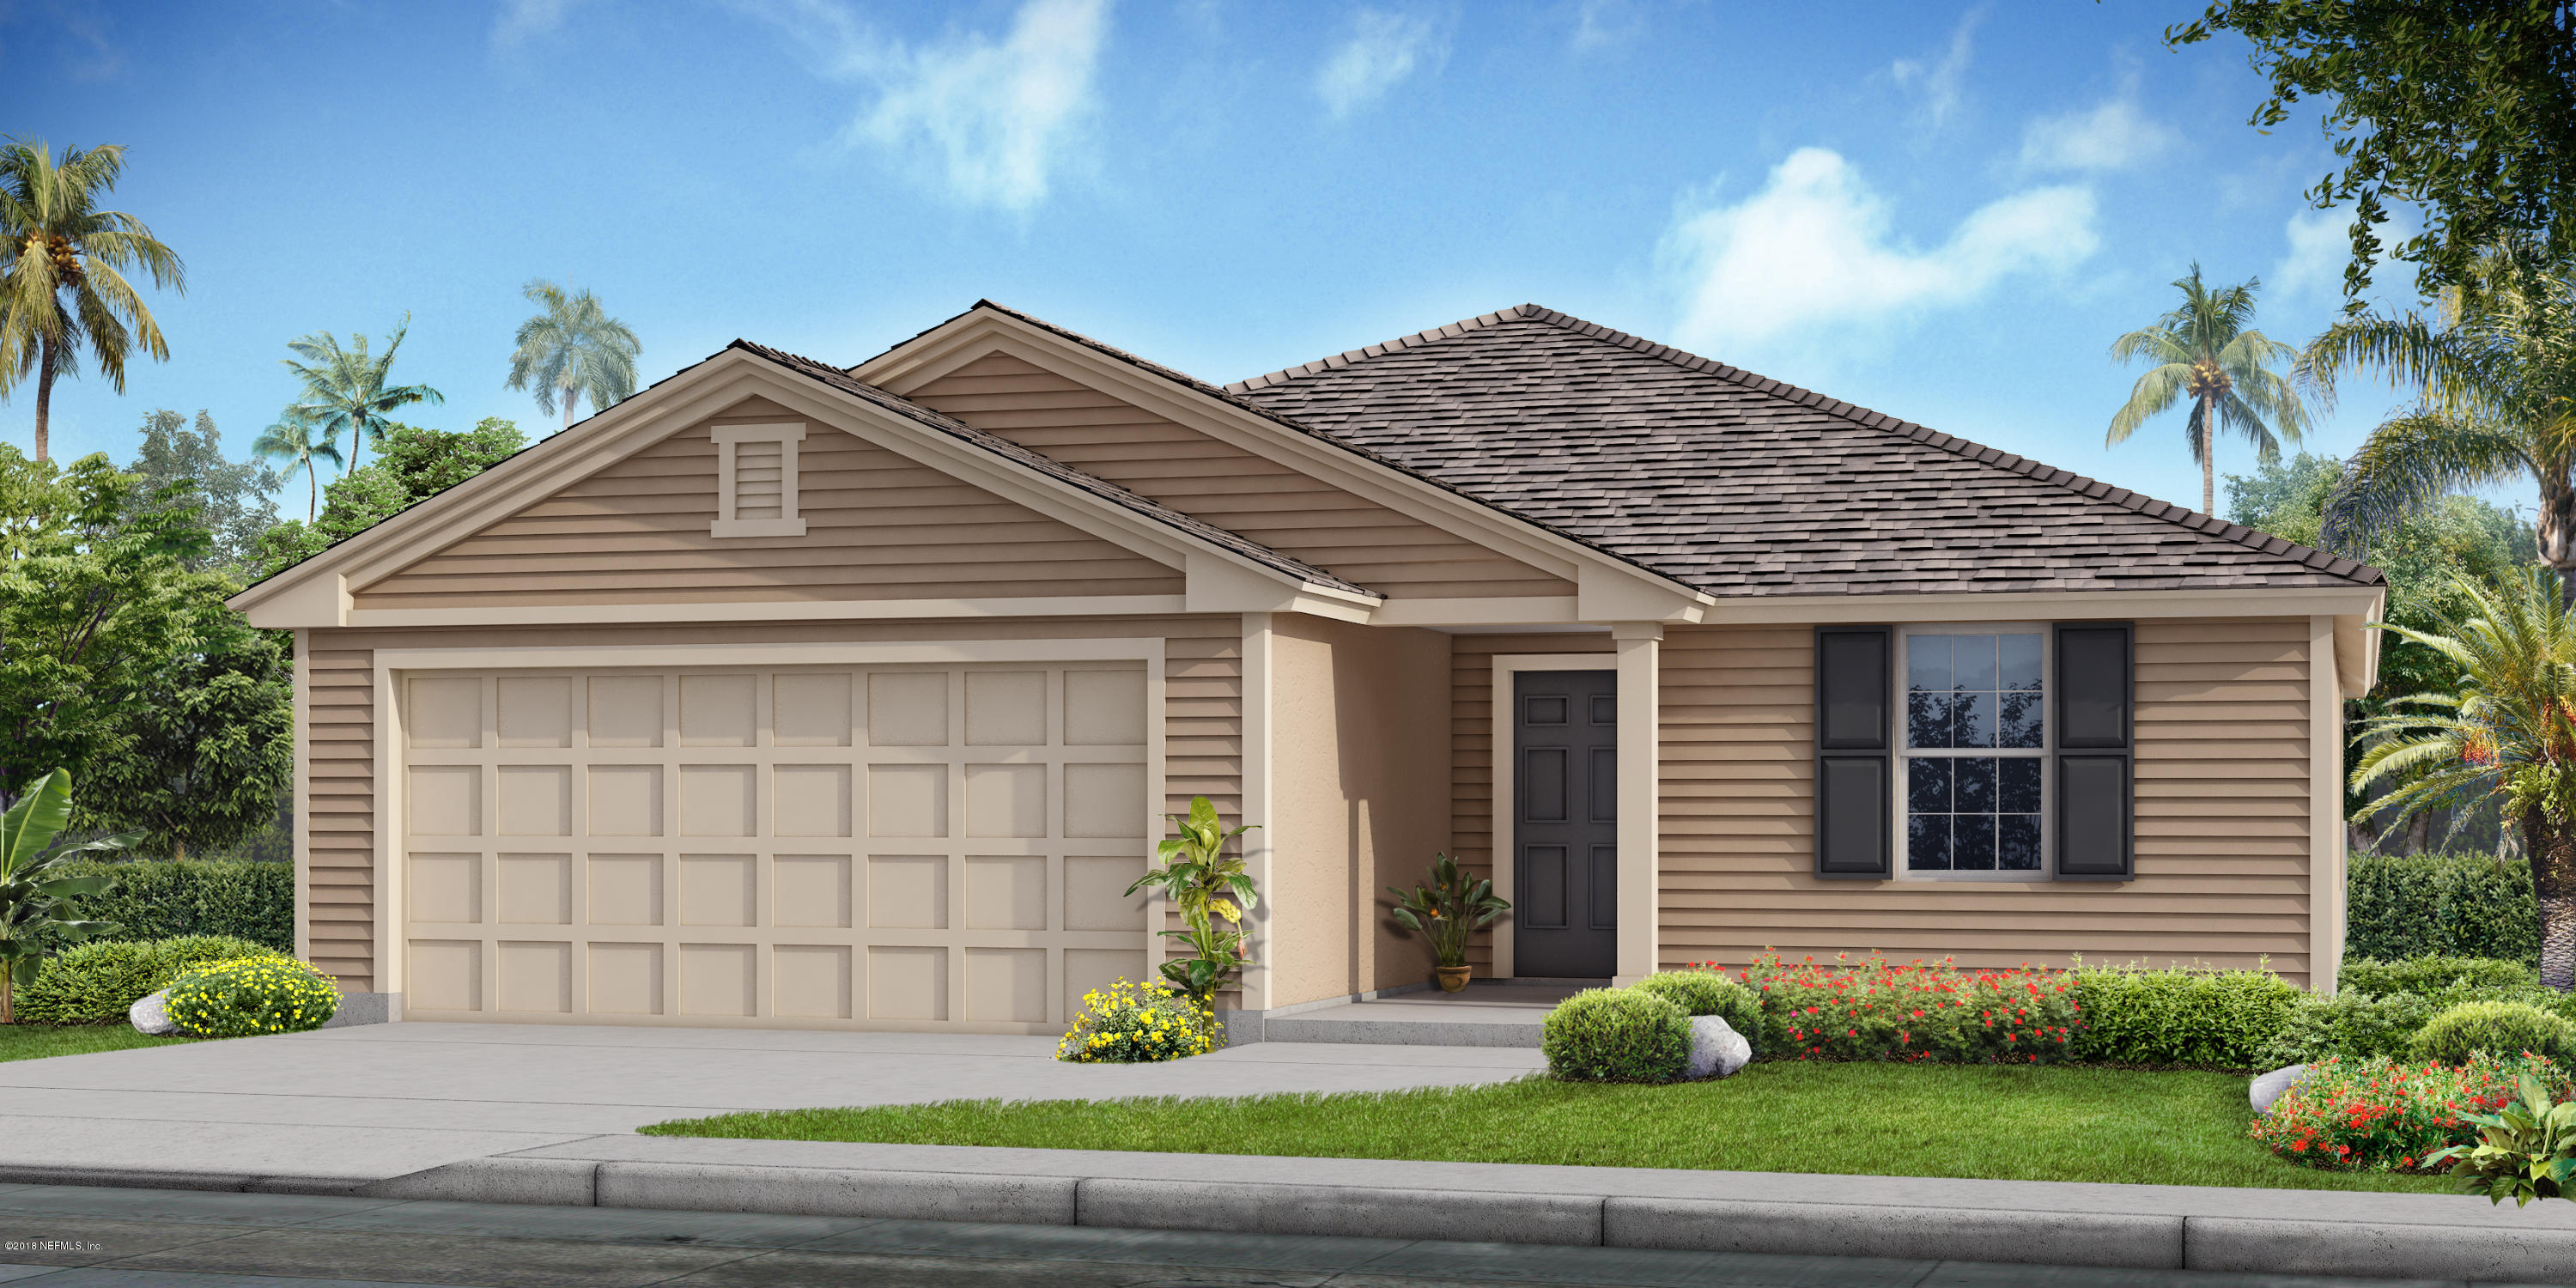 12220 GLIMMER, JACKSONVILLE, FLORIDA 32219, 3 Bedrooms Bedrooms, ,2 BathroomsBathrooms,Residential - single family,For sale,GLIMMER,952648